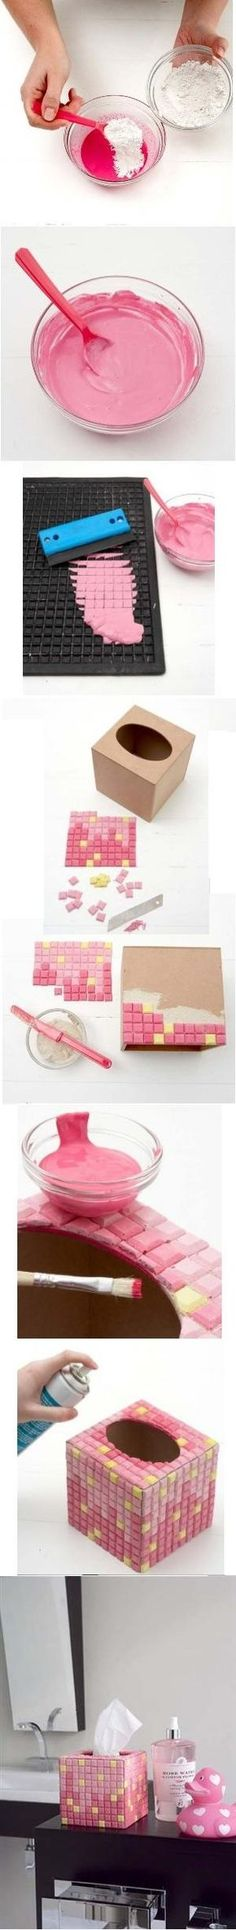 Create your own mosaic with gypsum powder Diy Arts And Crafts, Fun Crafts, Diy Y Manualidades, Diy Inspiration, Mosaic Art, Mosaic Tiles, Craft Tutorials, Handicraft, Projects To Try